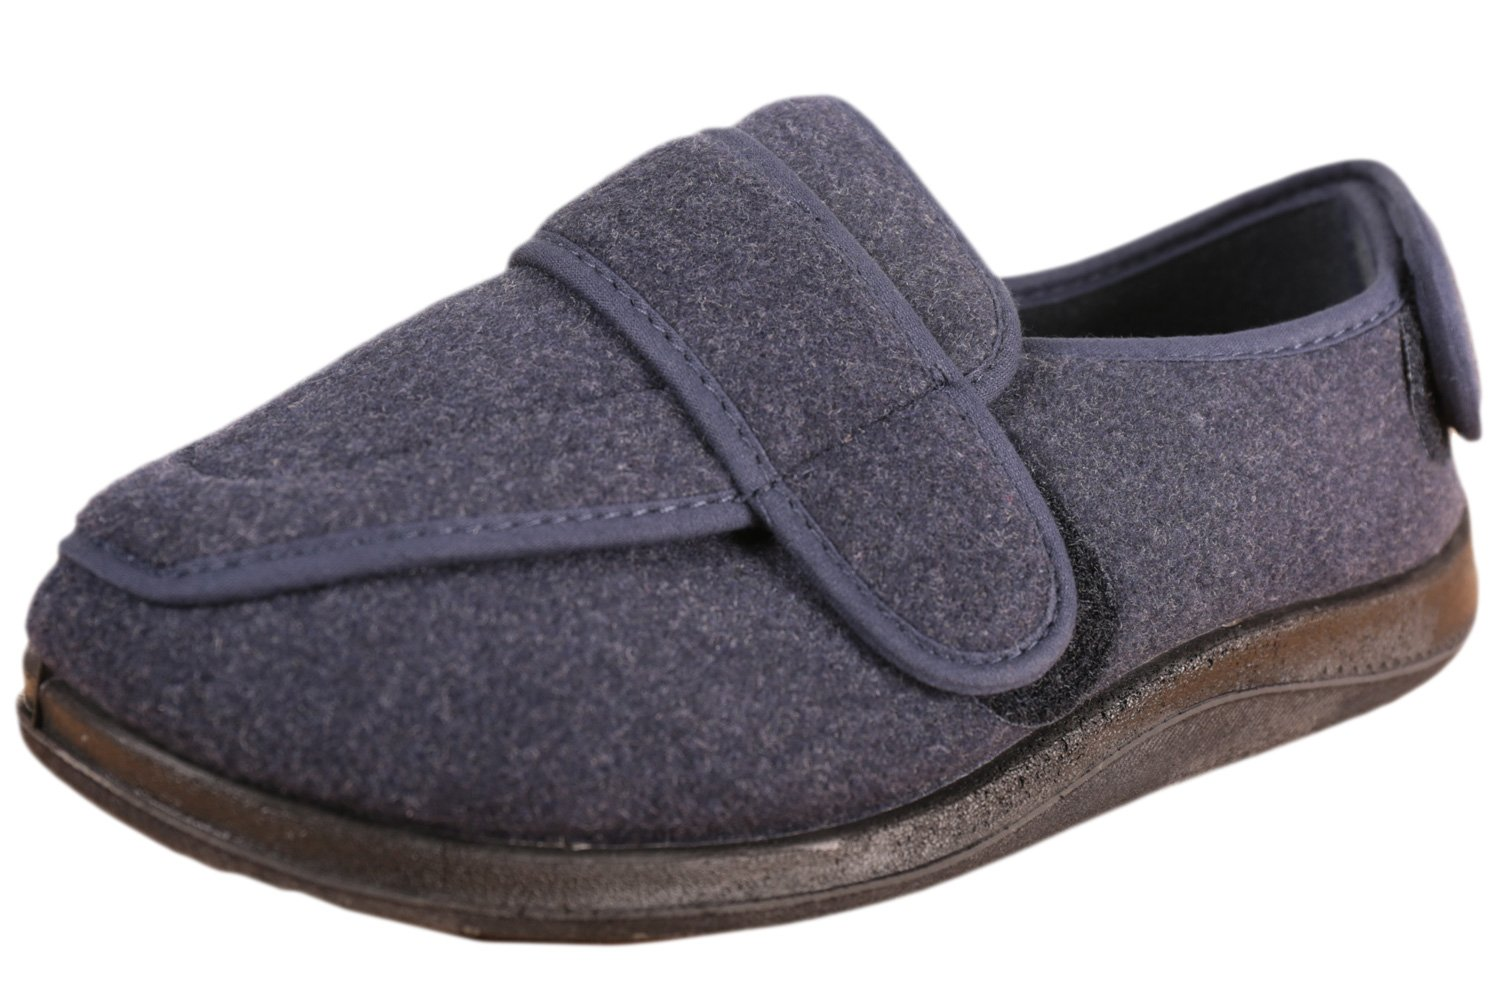 Foamtreads Men's Physician Slipper,10.5 2E US,Navy